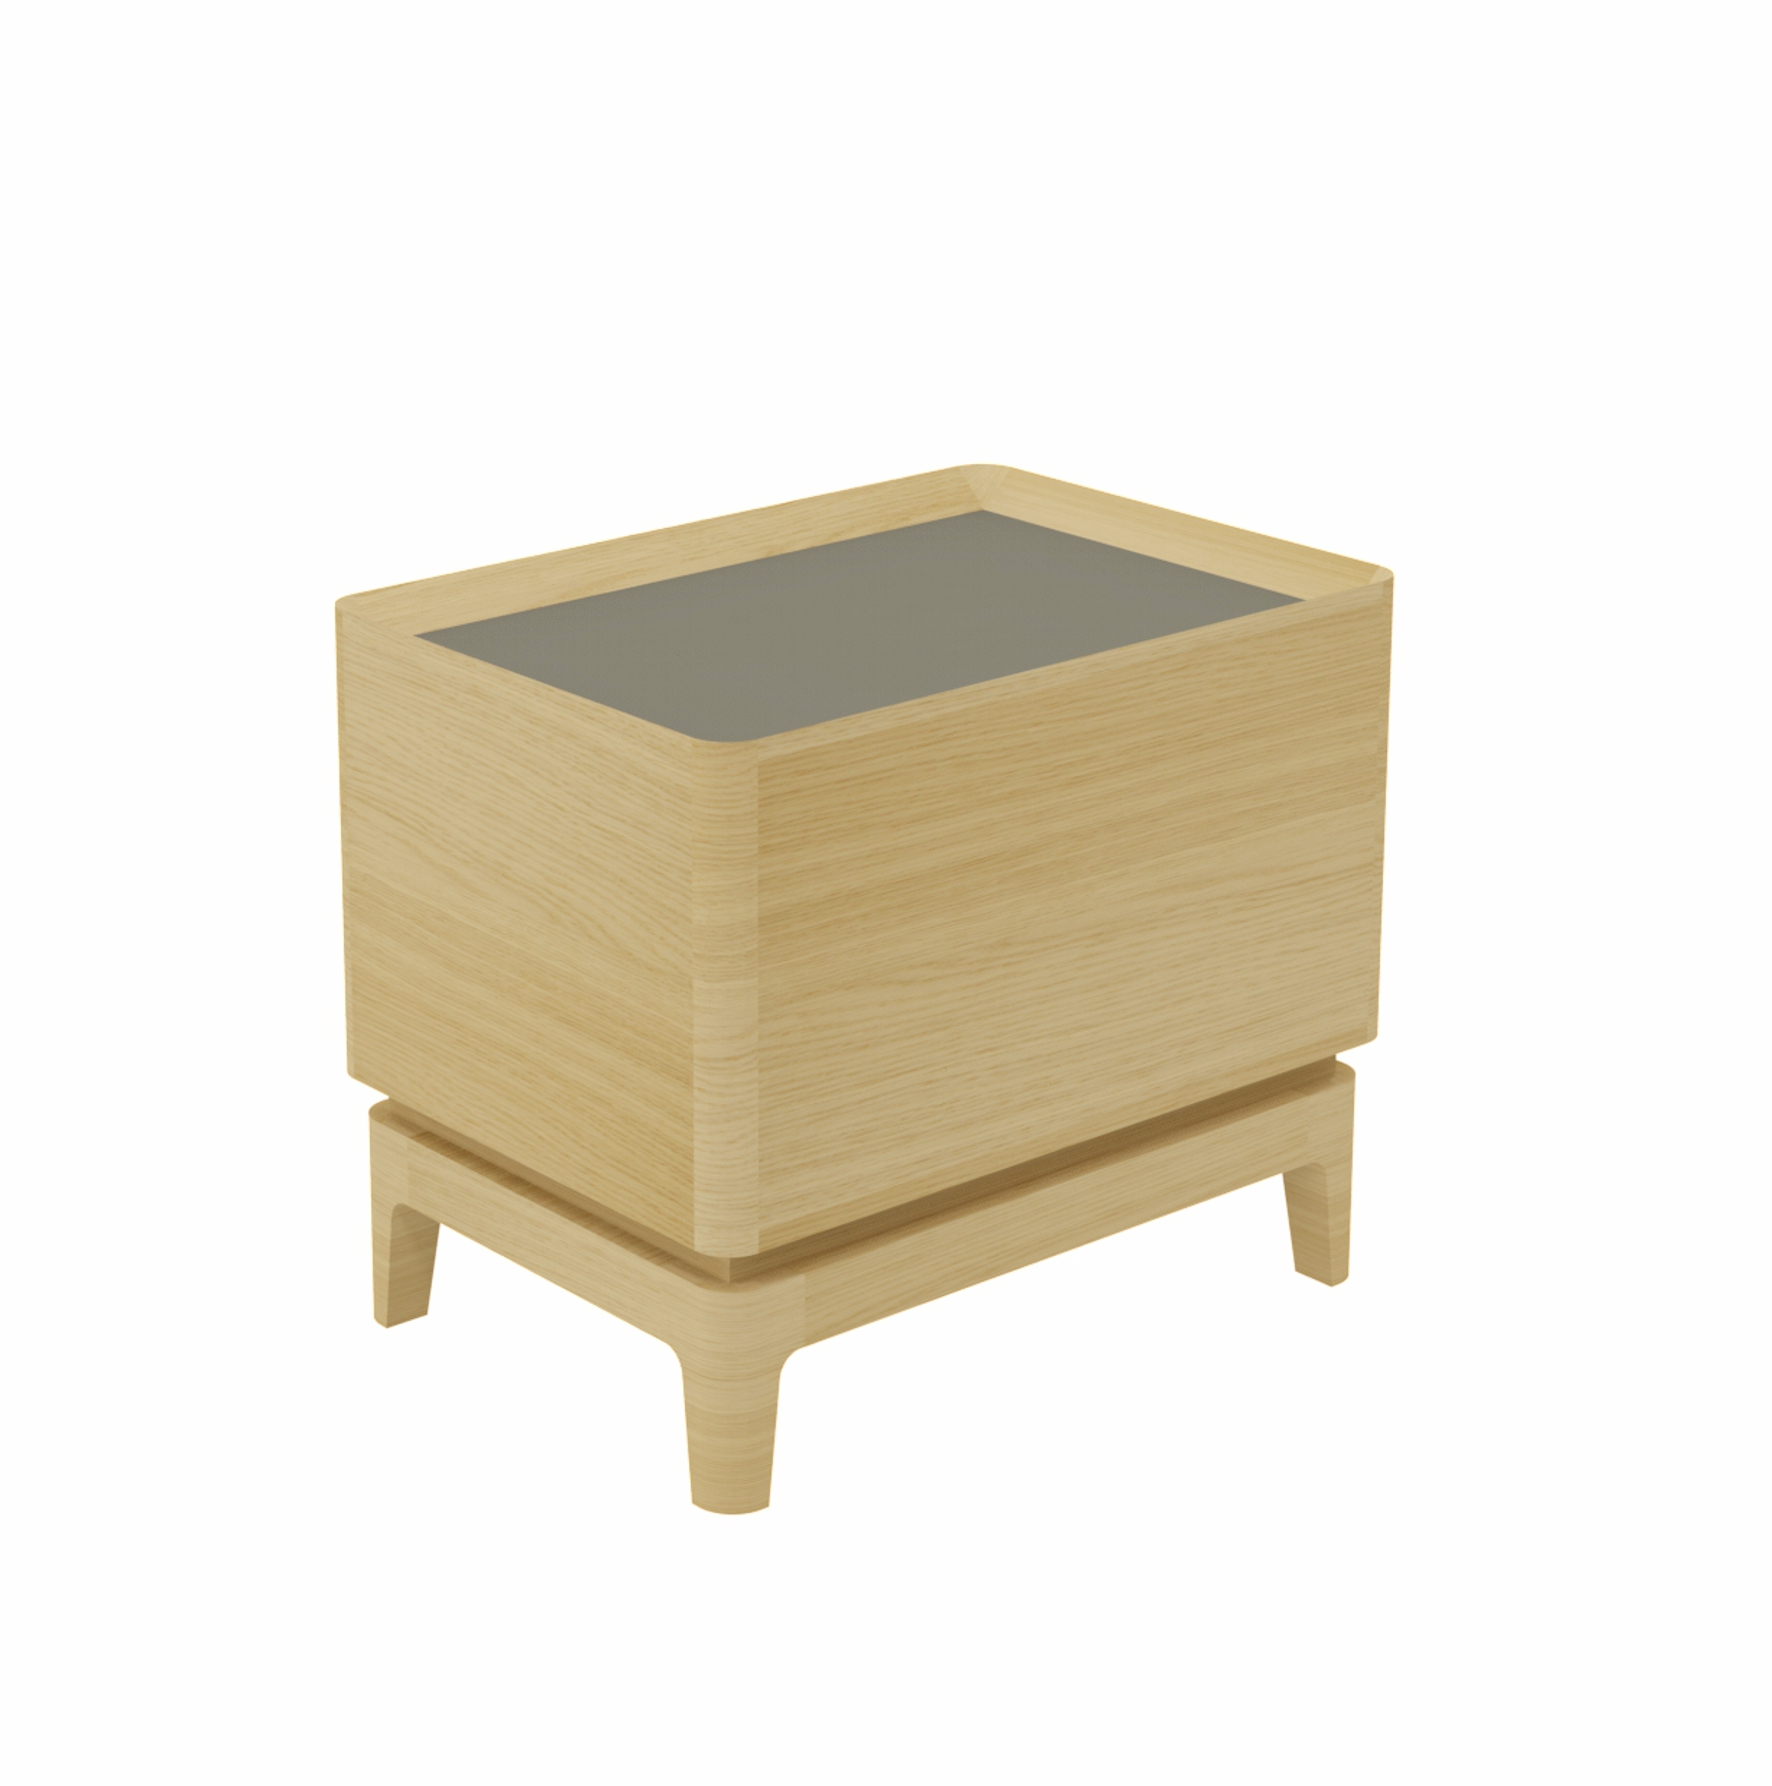 SiSi bedsite table